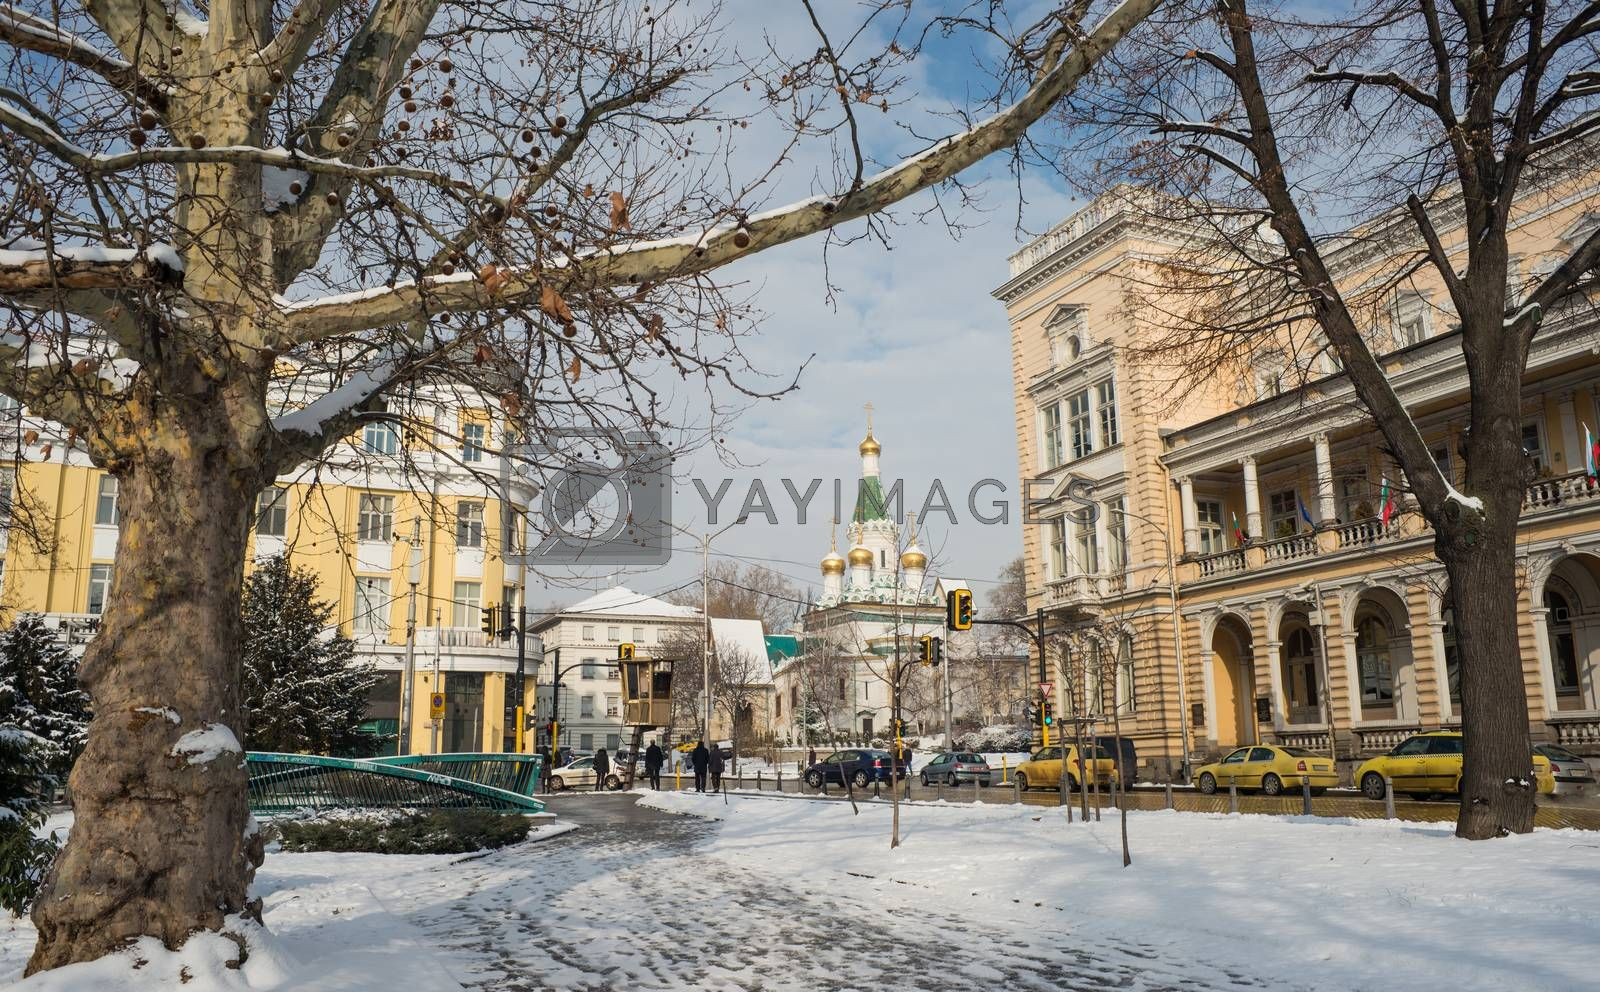 A winter view of downtown Sofia, Bulgaria with St. Nicholas of Sofia the New church